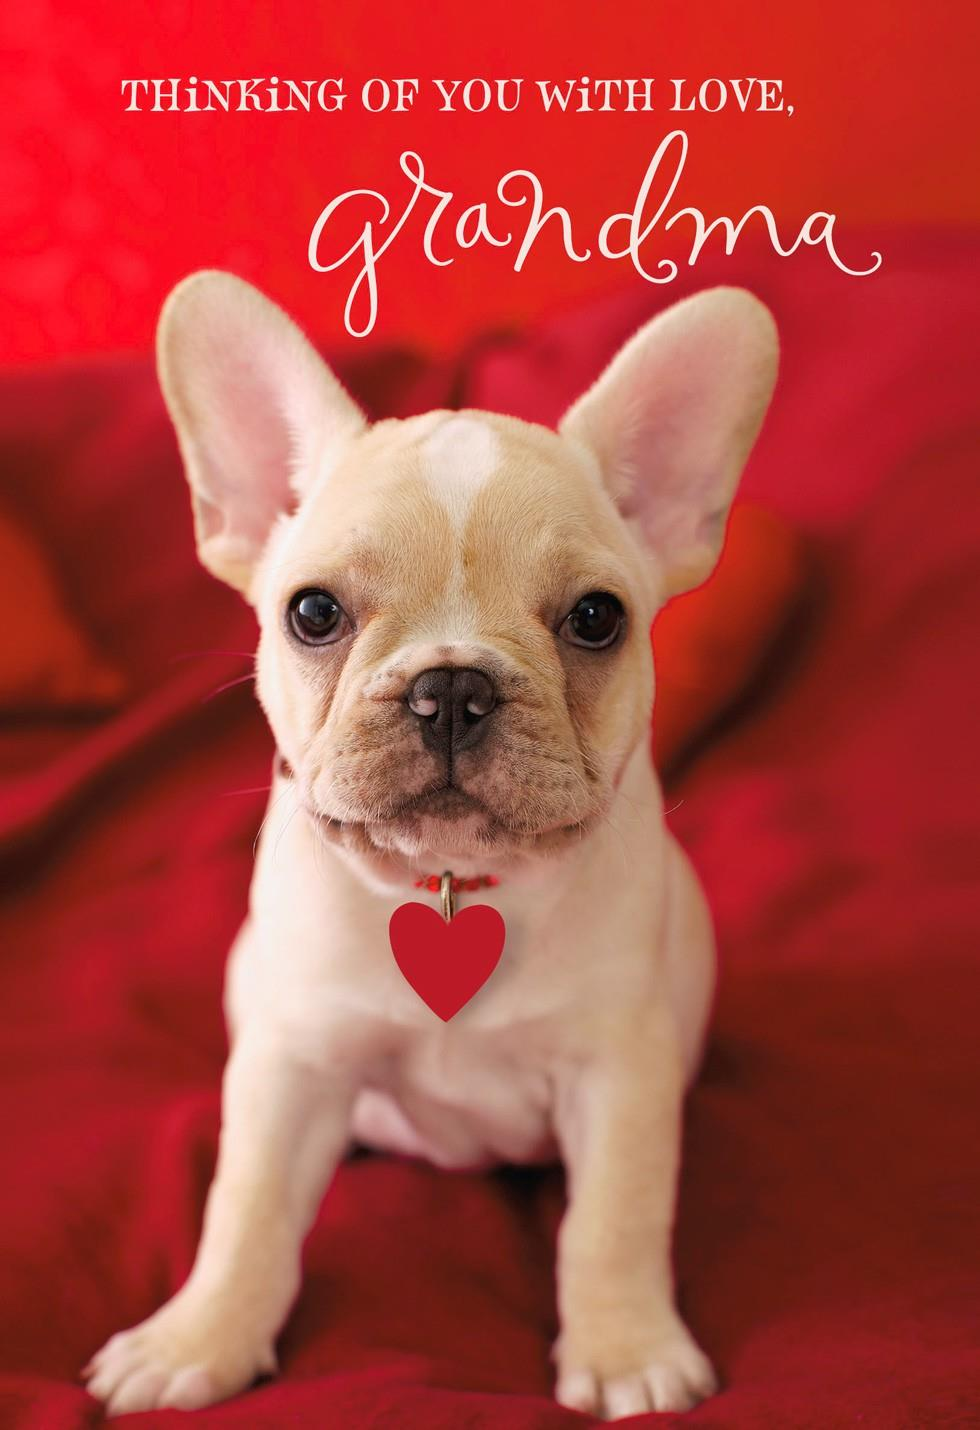 Cute Puppy Thinking Of Grandma Valentineu0027s Day Card